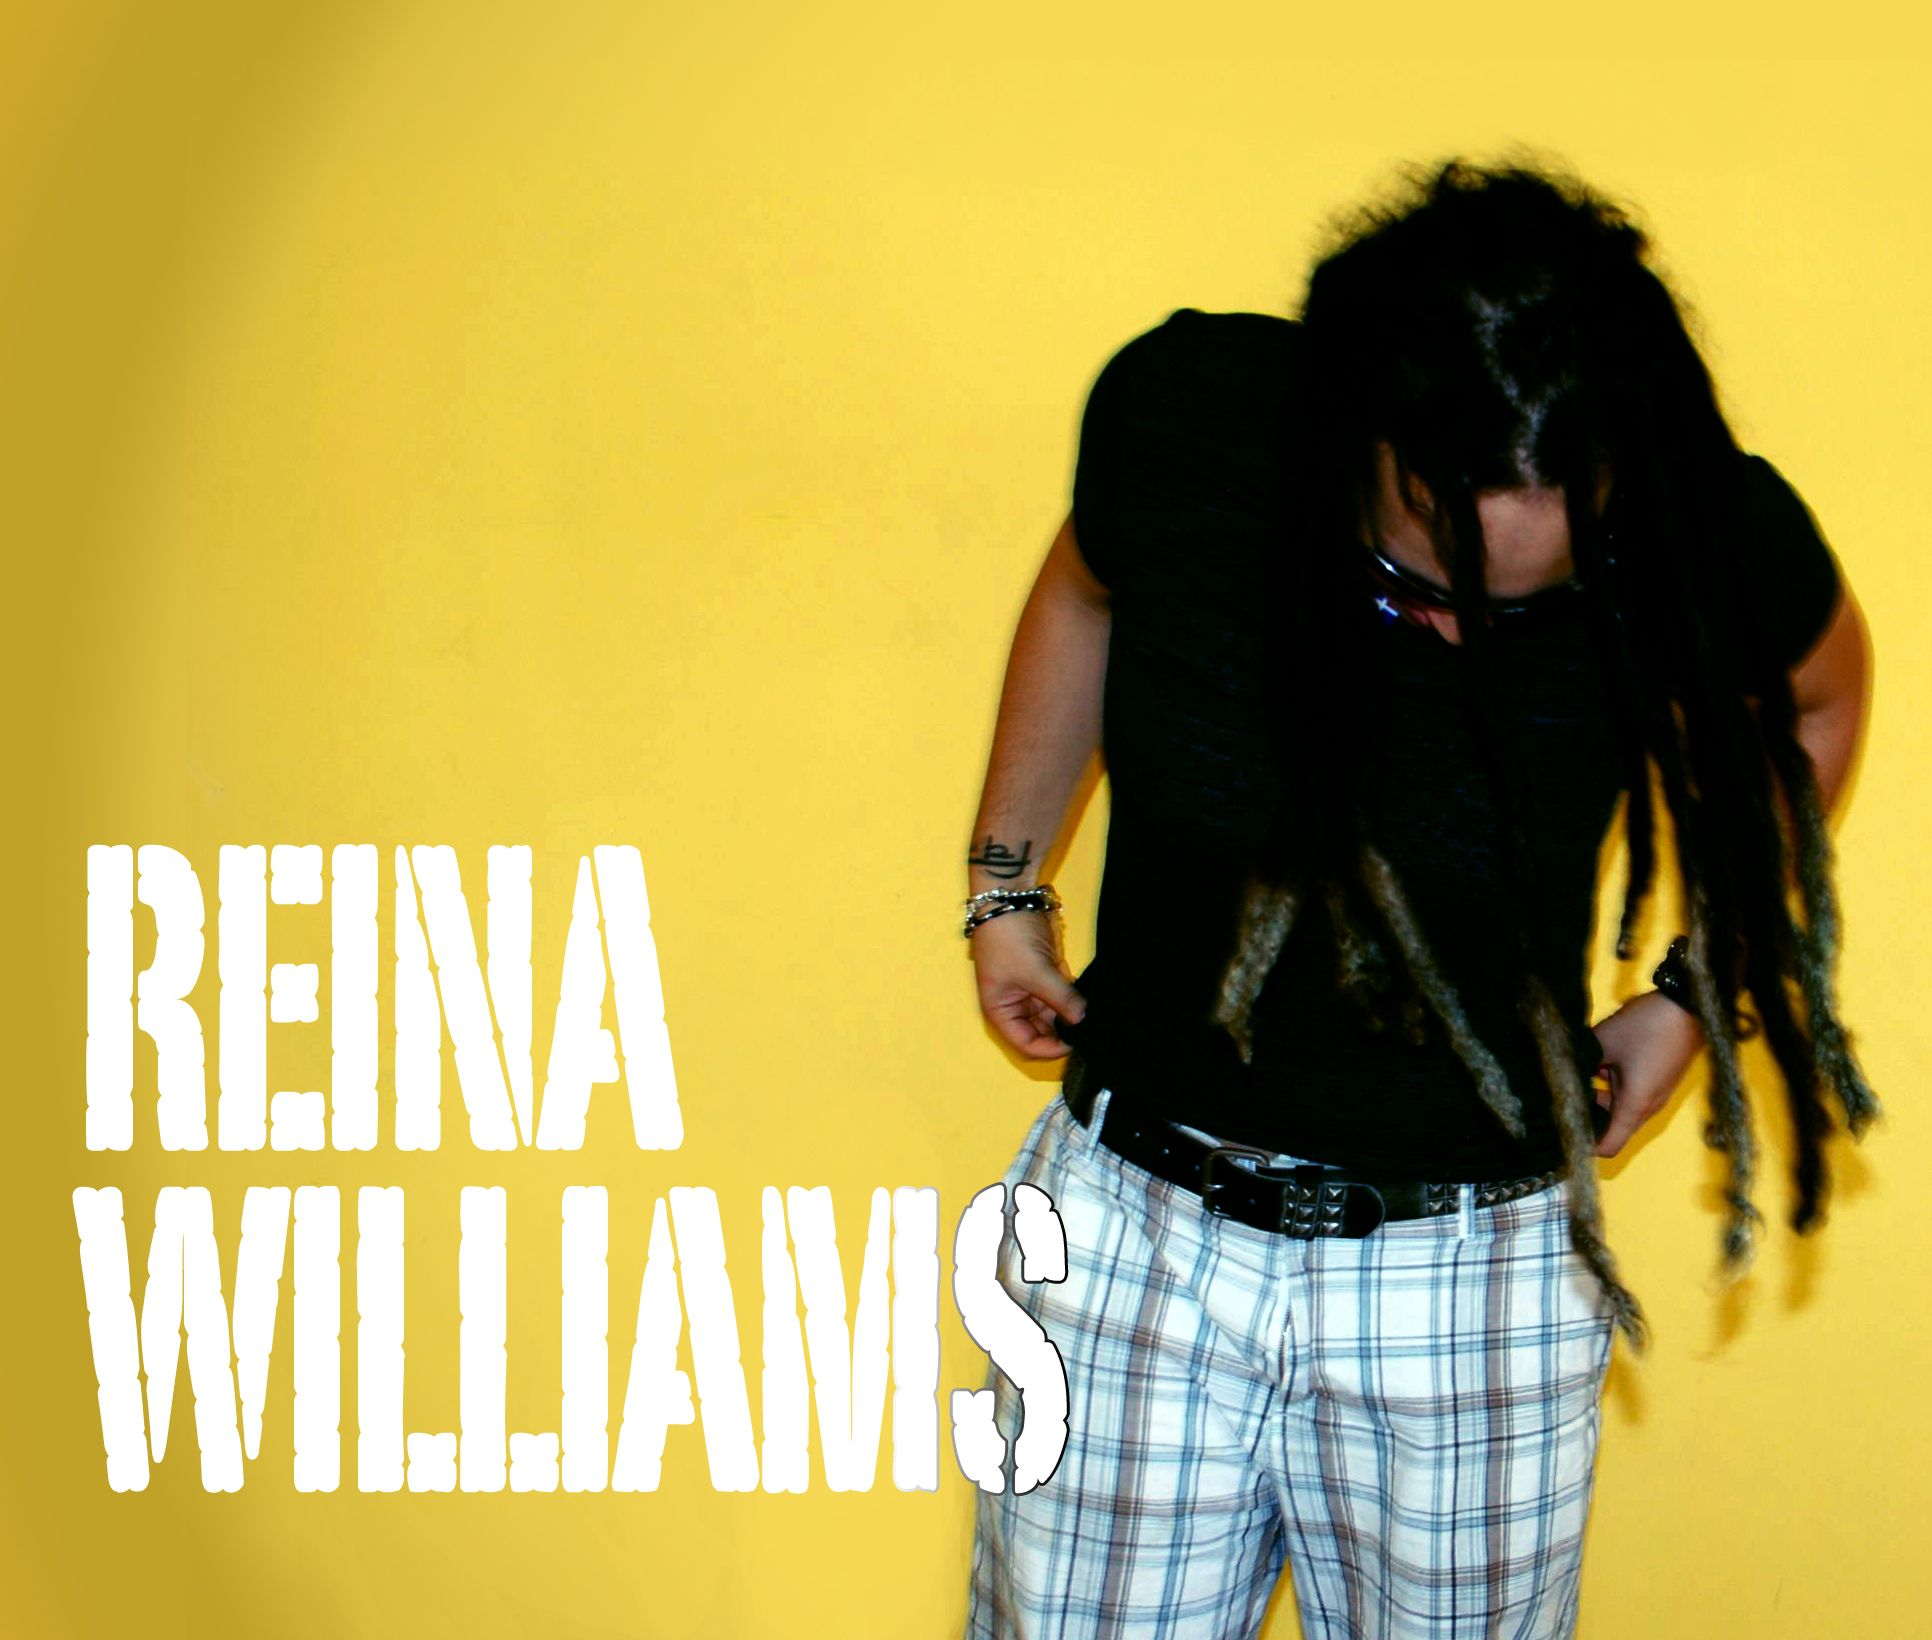 """@reinawilliams Recently making an appearance on FOX Network's The X-Factor, Baltimore native Tatiana """"Reina"""" Williams is making noise these days with her eclectic sound and authenticity, determined to bring the feeling back to popular music.    http://reinawilliams.com"""